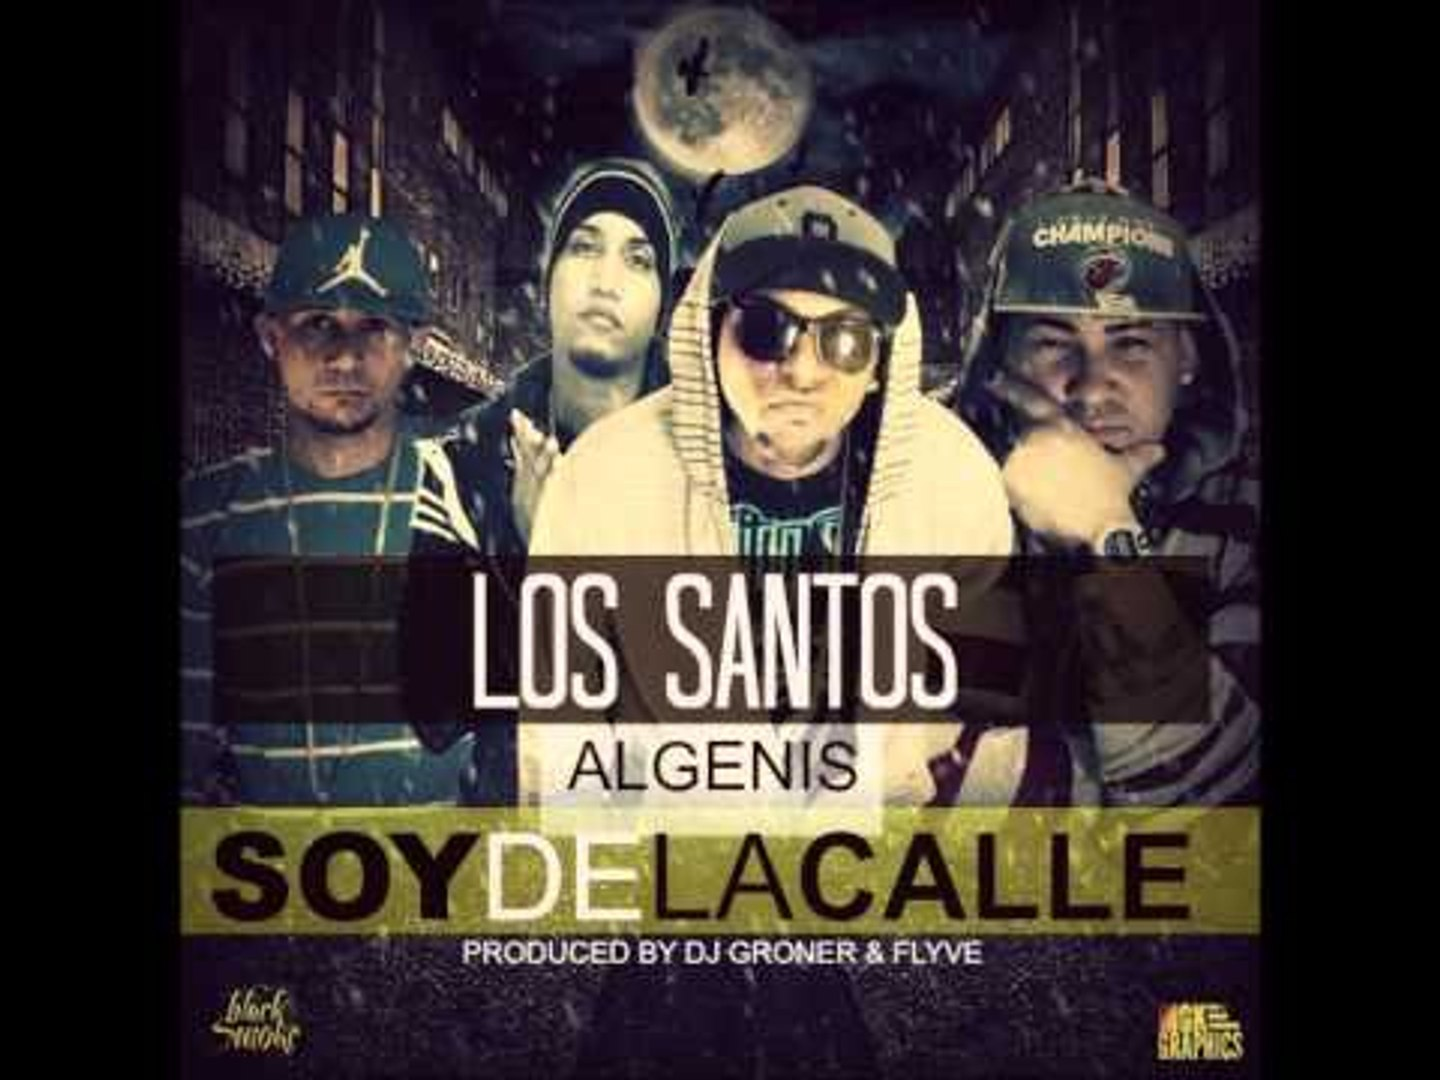 LOS SANTOS FT ALGENIS THE OTHER FACE SOY DE LA CALLE PREVIEW NEW 2013